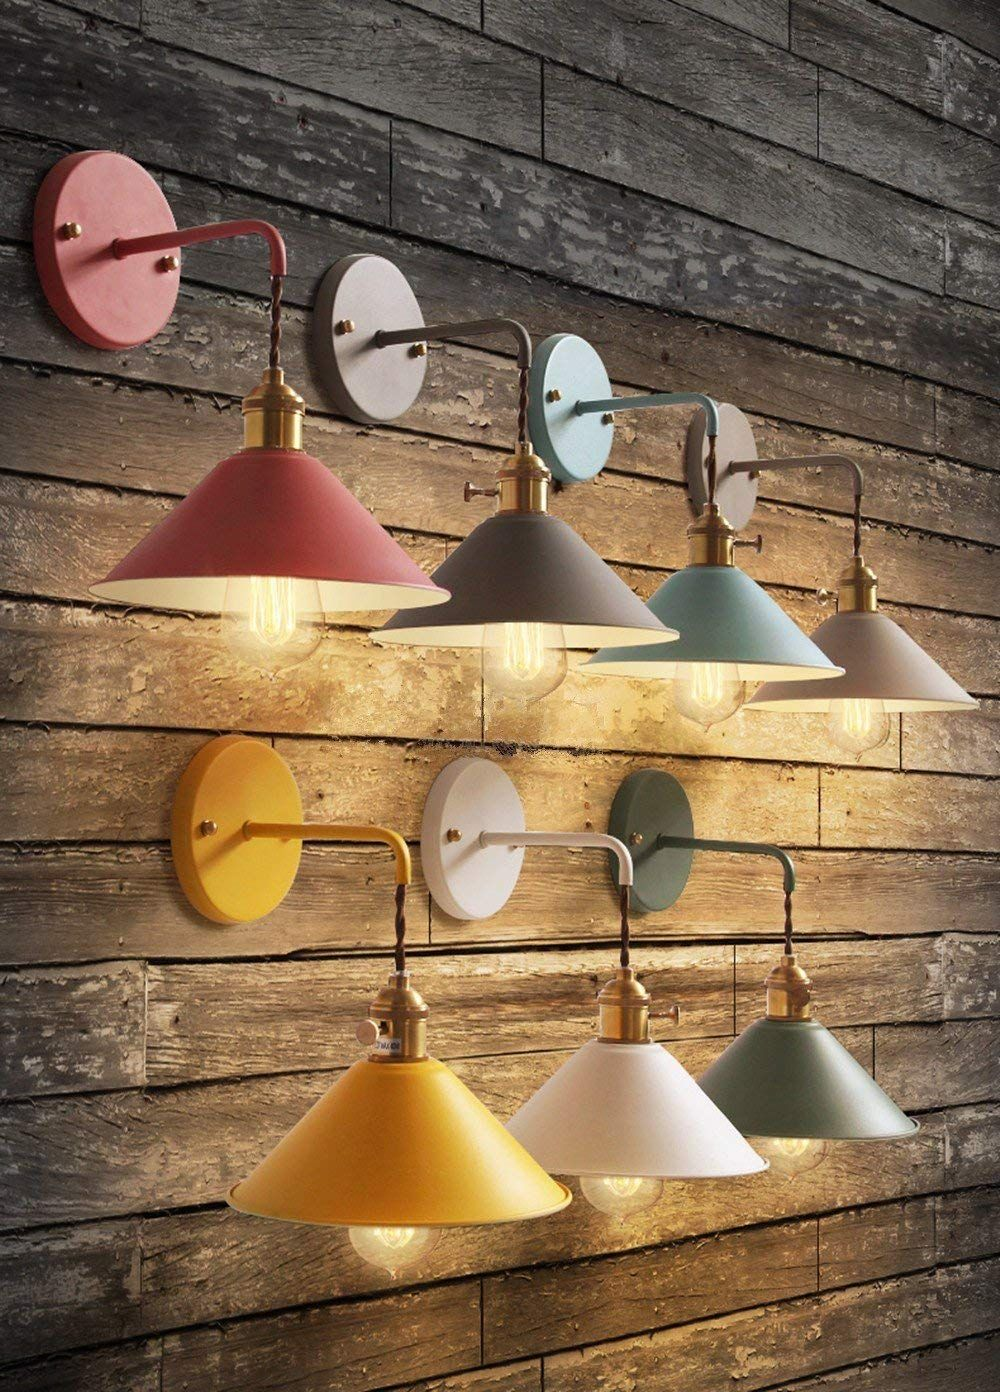 Gg Pinkey Modern Wall Sconces Light Simple Style Wall Mounted Pendant Light Fixtures For Bedroom Bedside Lamp G Wall Lamp Wall Lamps Living Room Plates On Wall